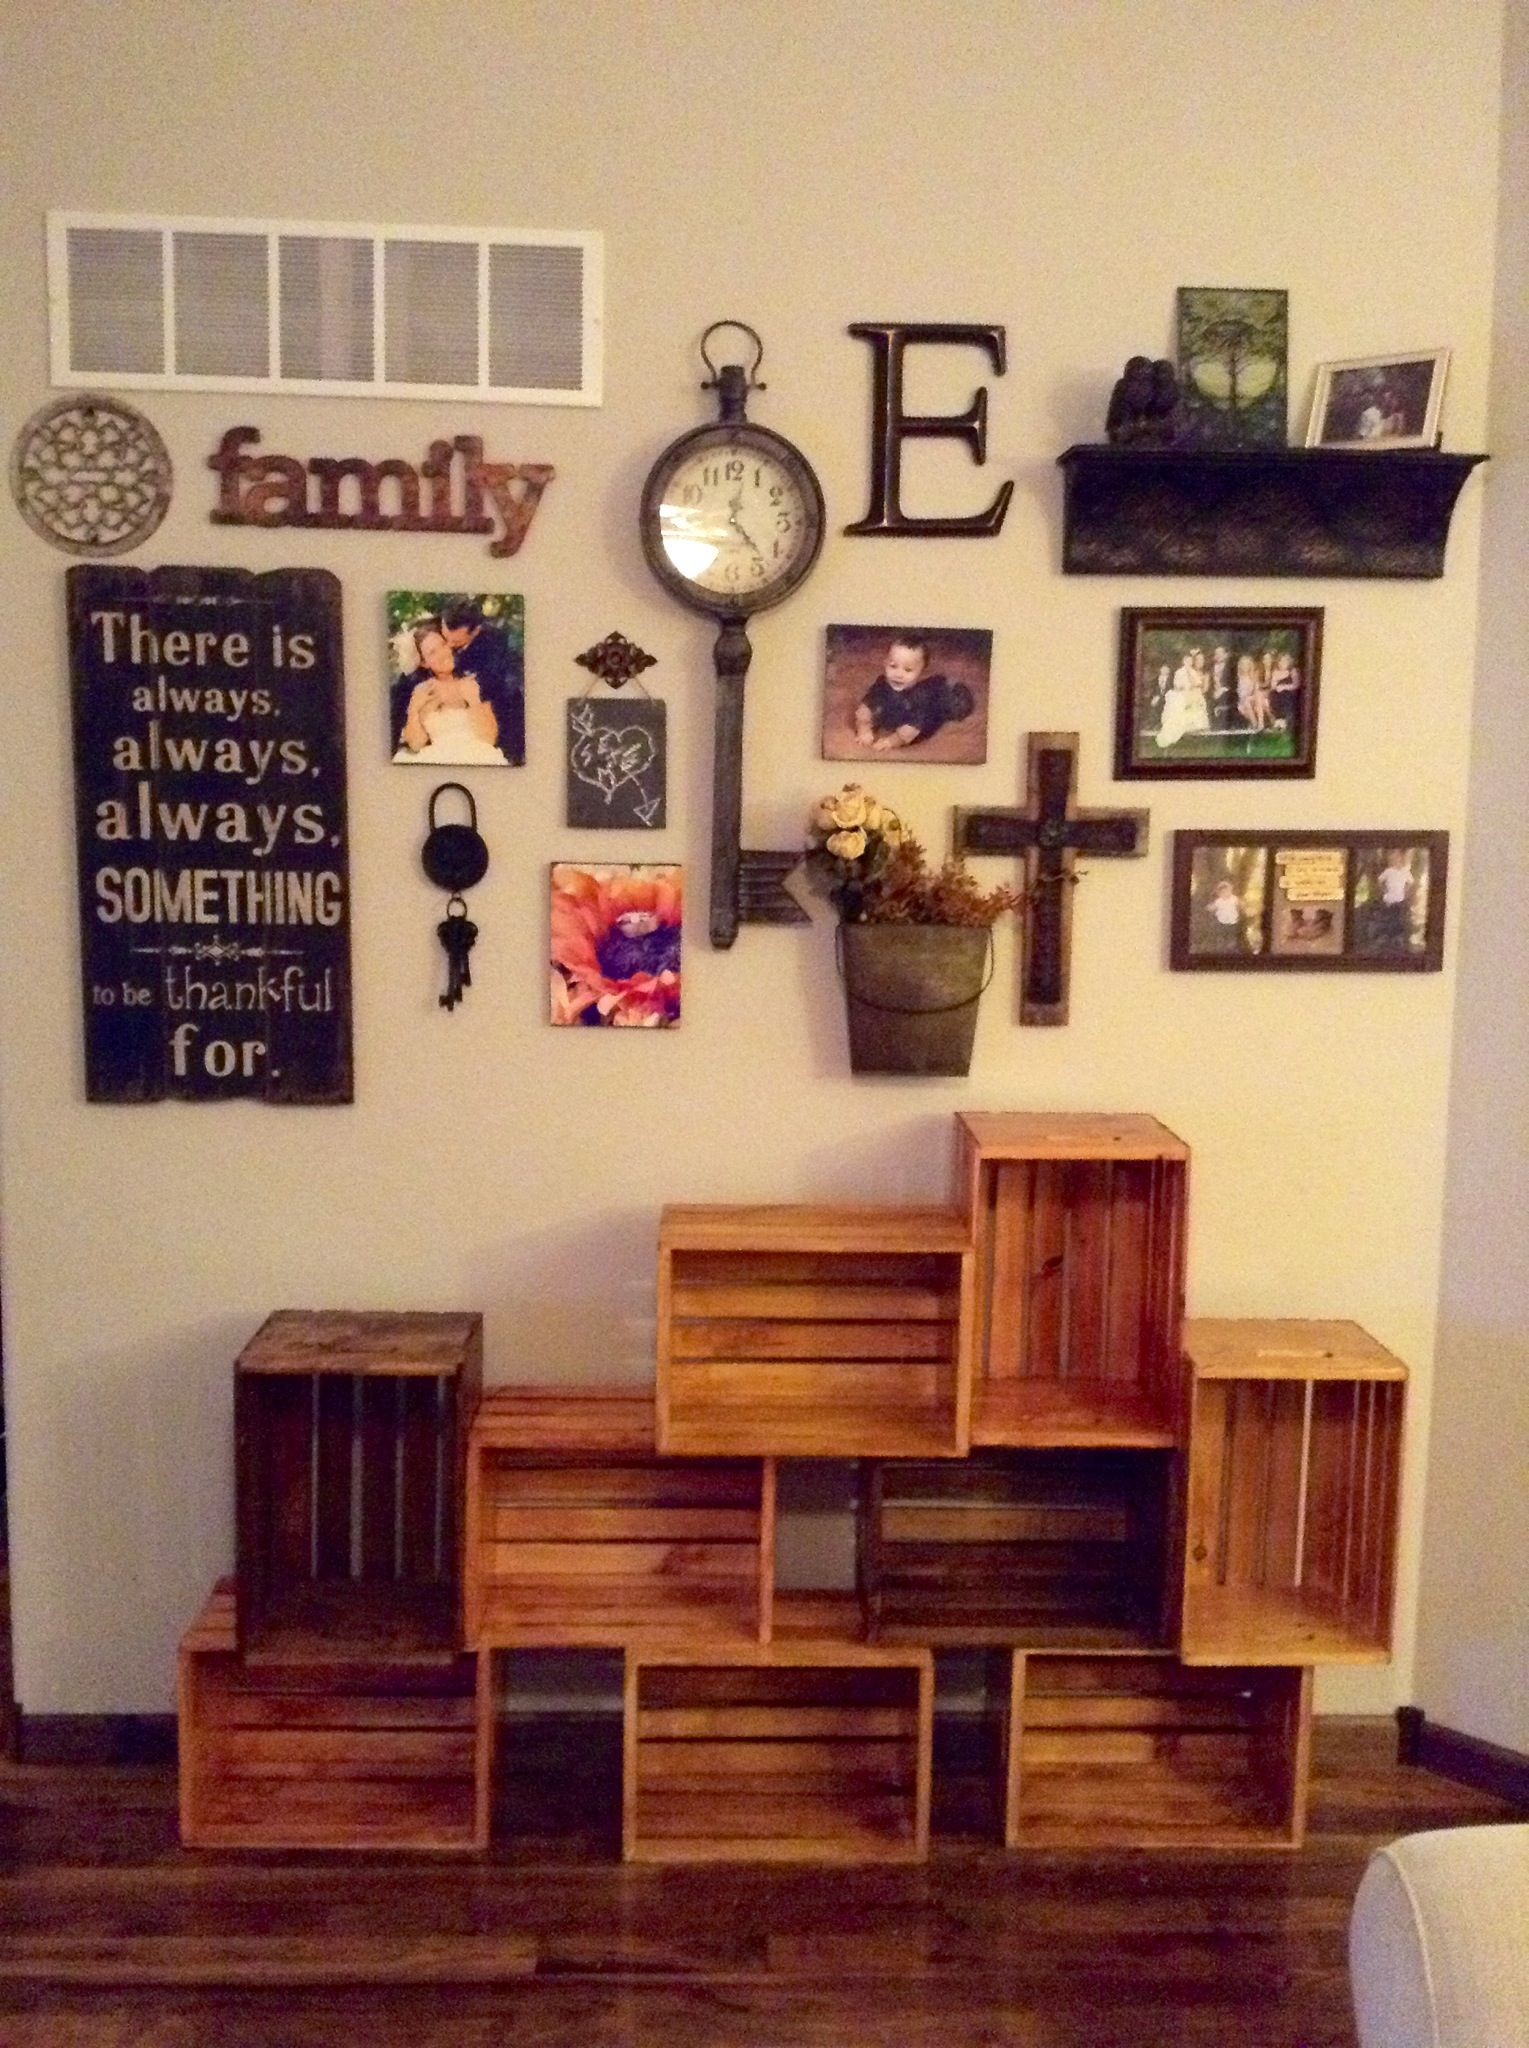 Living Room Wall Decor Wood Crate Shelf Pinterest Home Decor